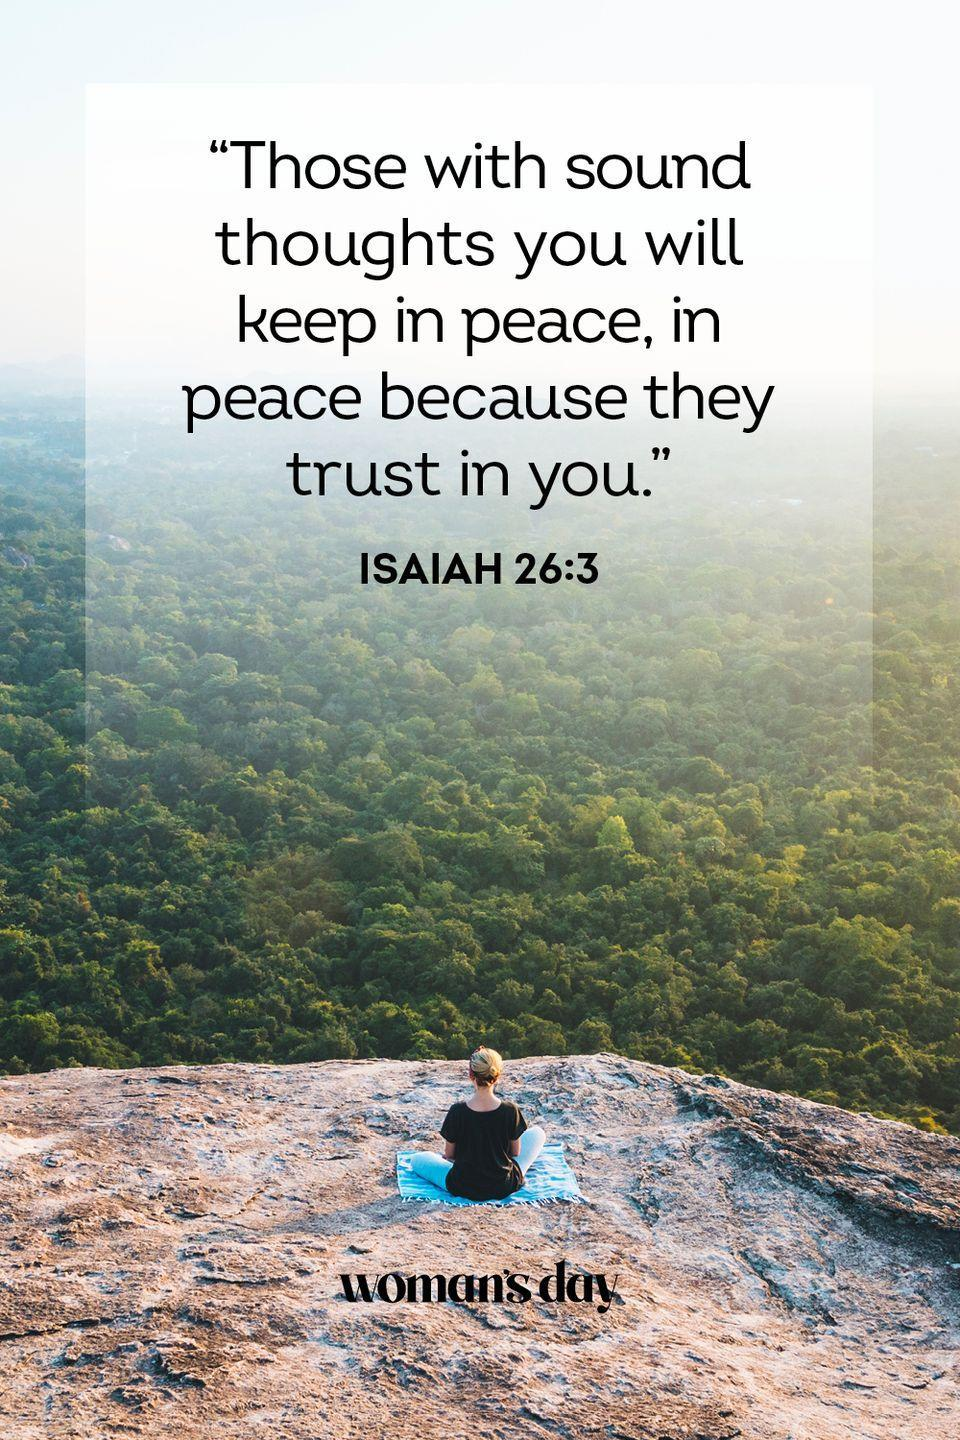 """<p>""""Those with sound thoughts you will keep in peace, in peace because they trust in you."""" — Isaiah 26:3</p><p><strong>The Good News</strong>: Trust in the Lord, and he will not disappoint you.</p>"""